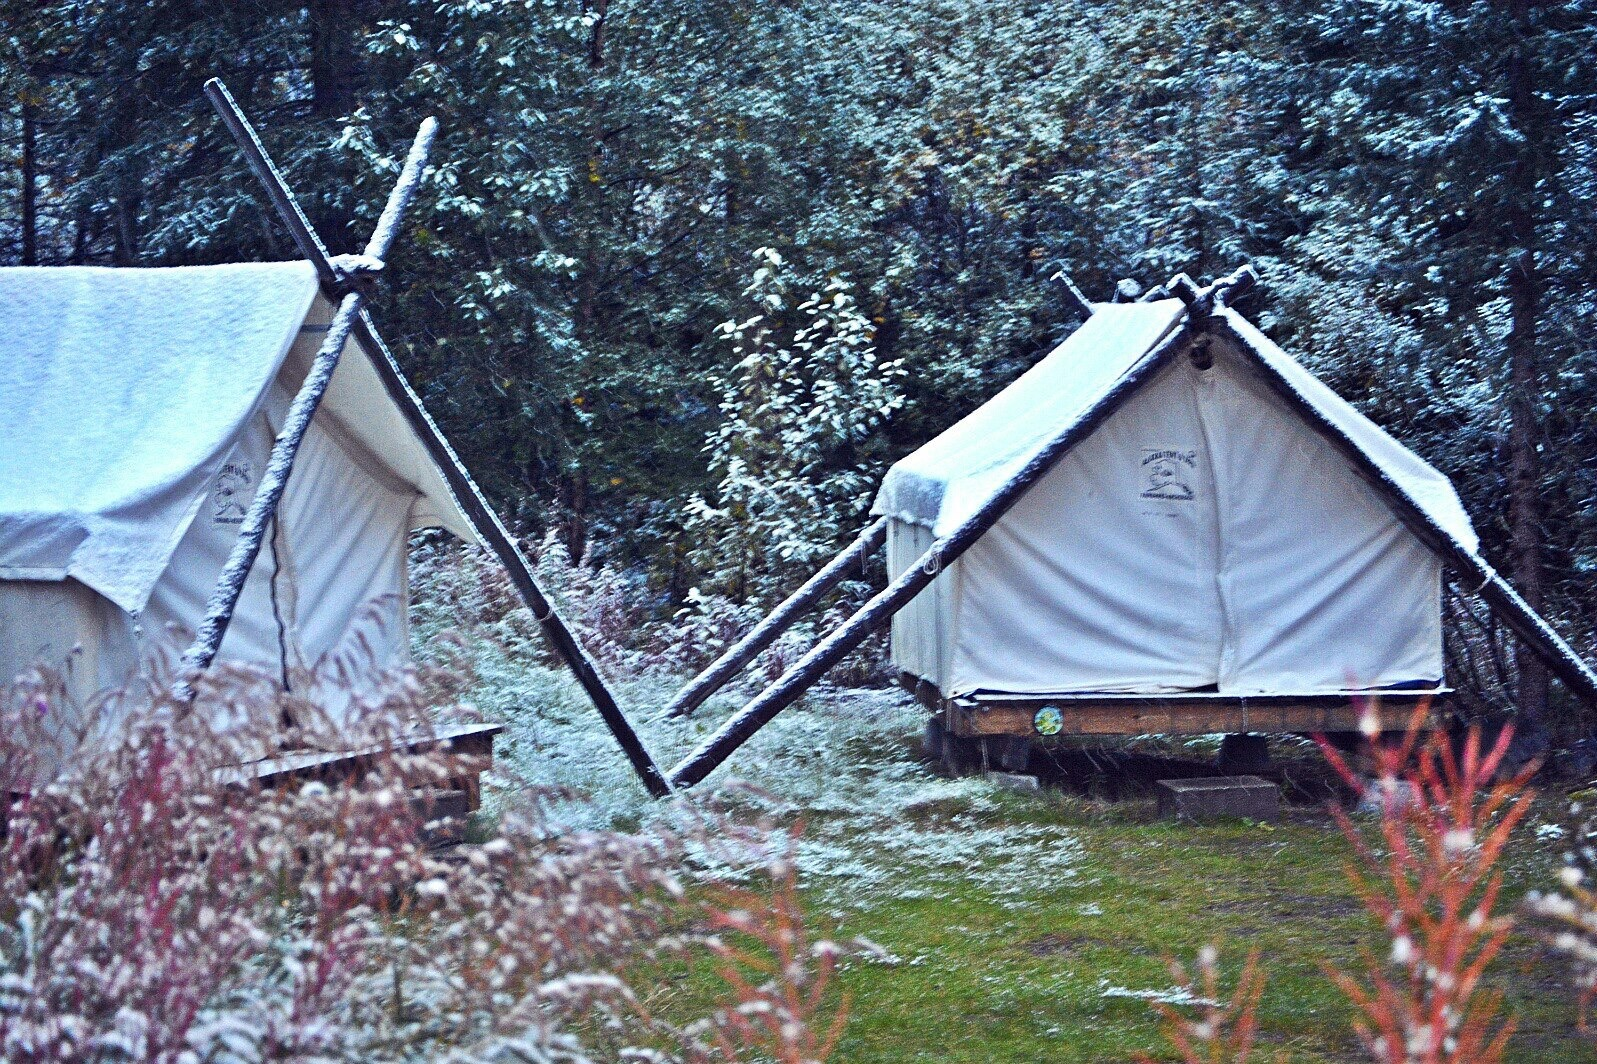 ... alaska wall tent gl&ing & Travel Alaska From Fairbanks To Anchorage - A Jaunt With Joy